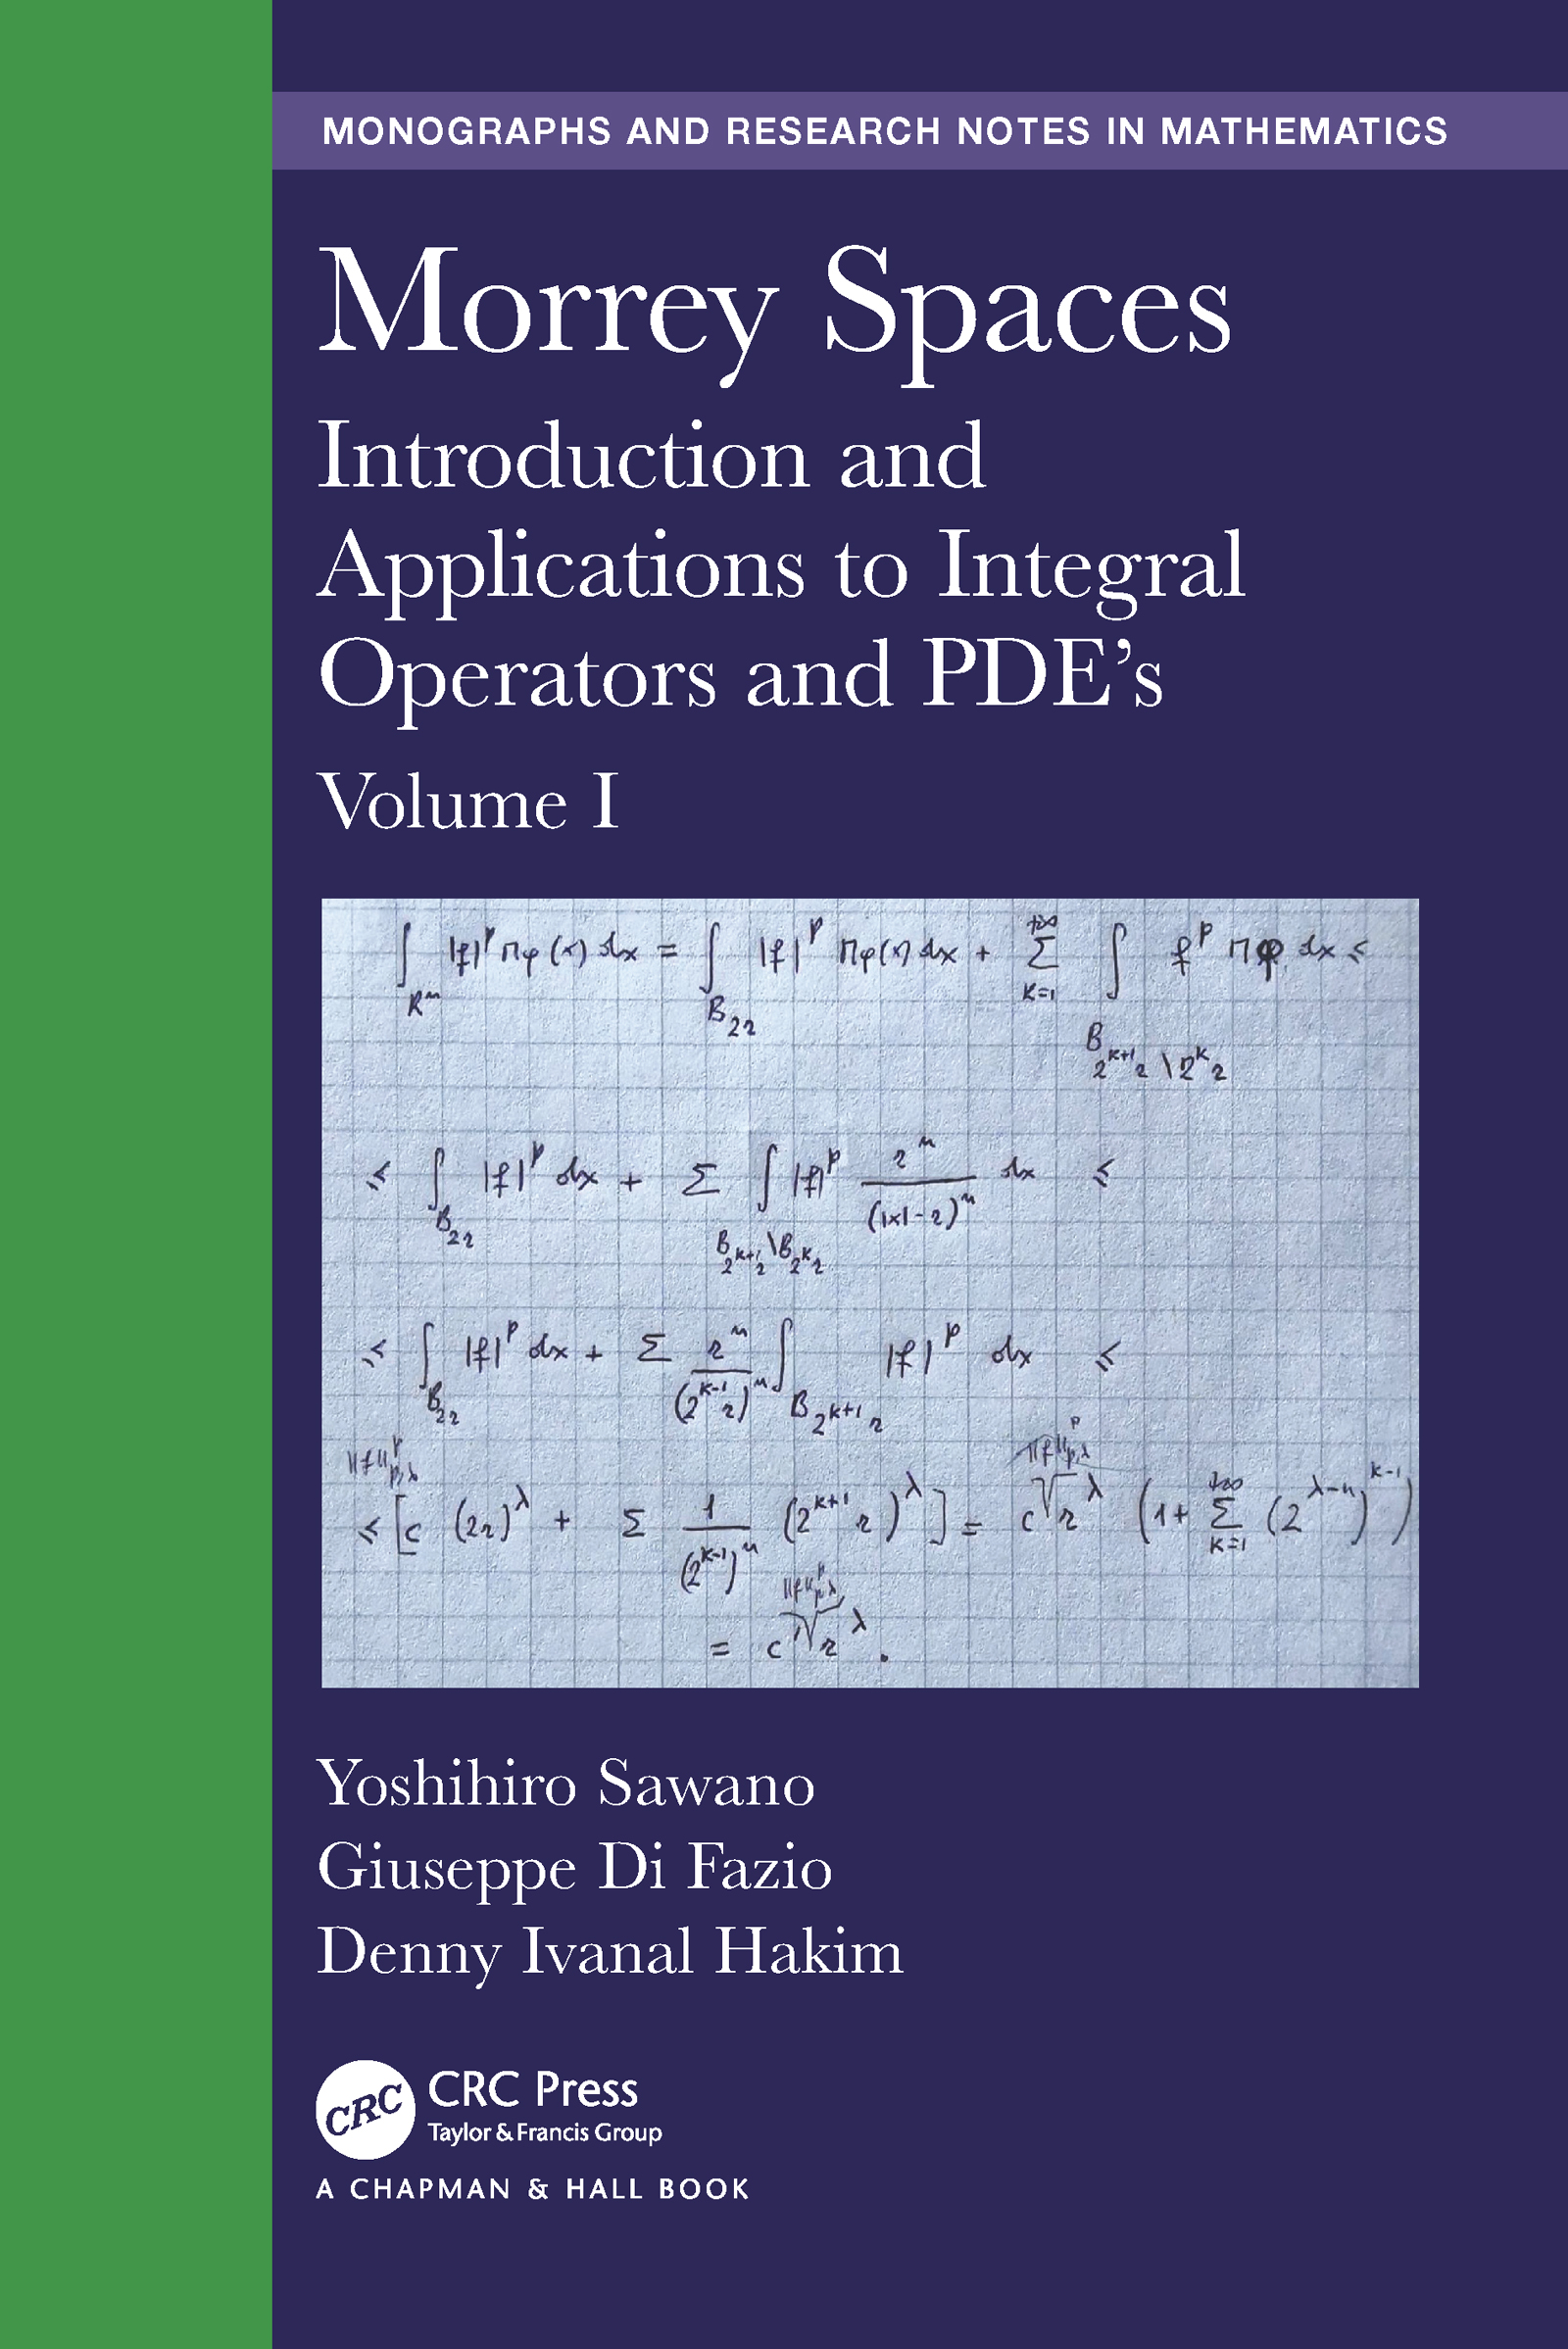 Linear and sublinear operators in Morrey spaces